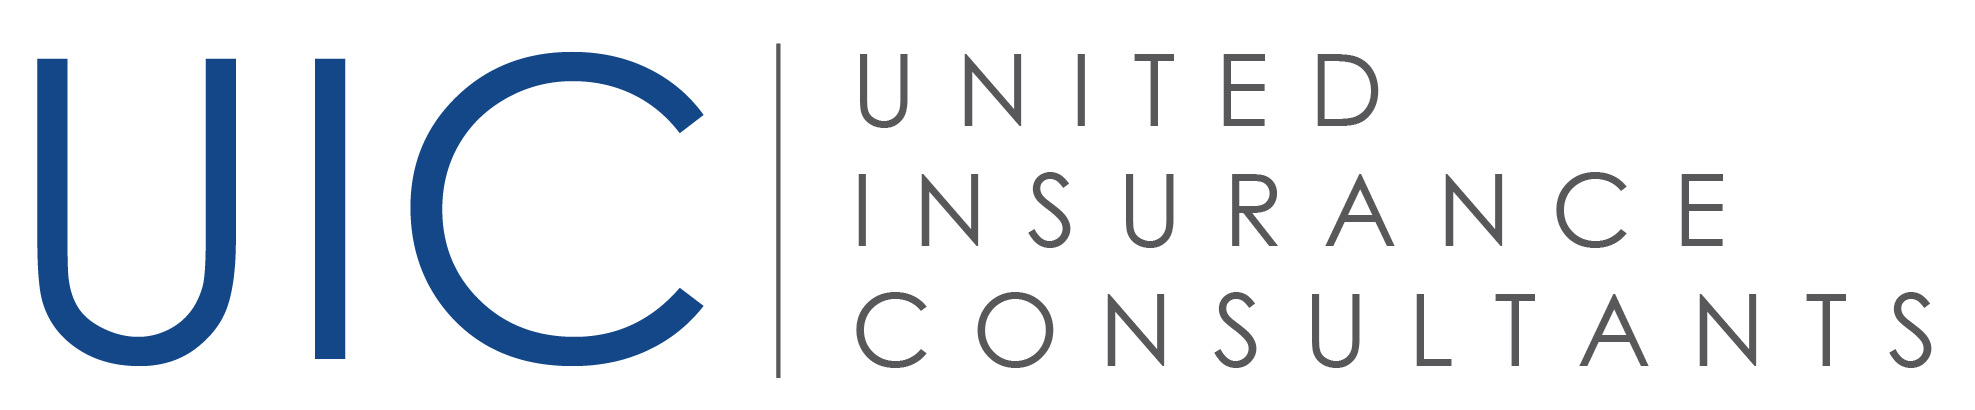 United Insurance Consultants